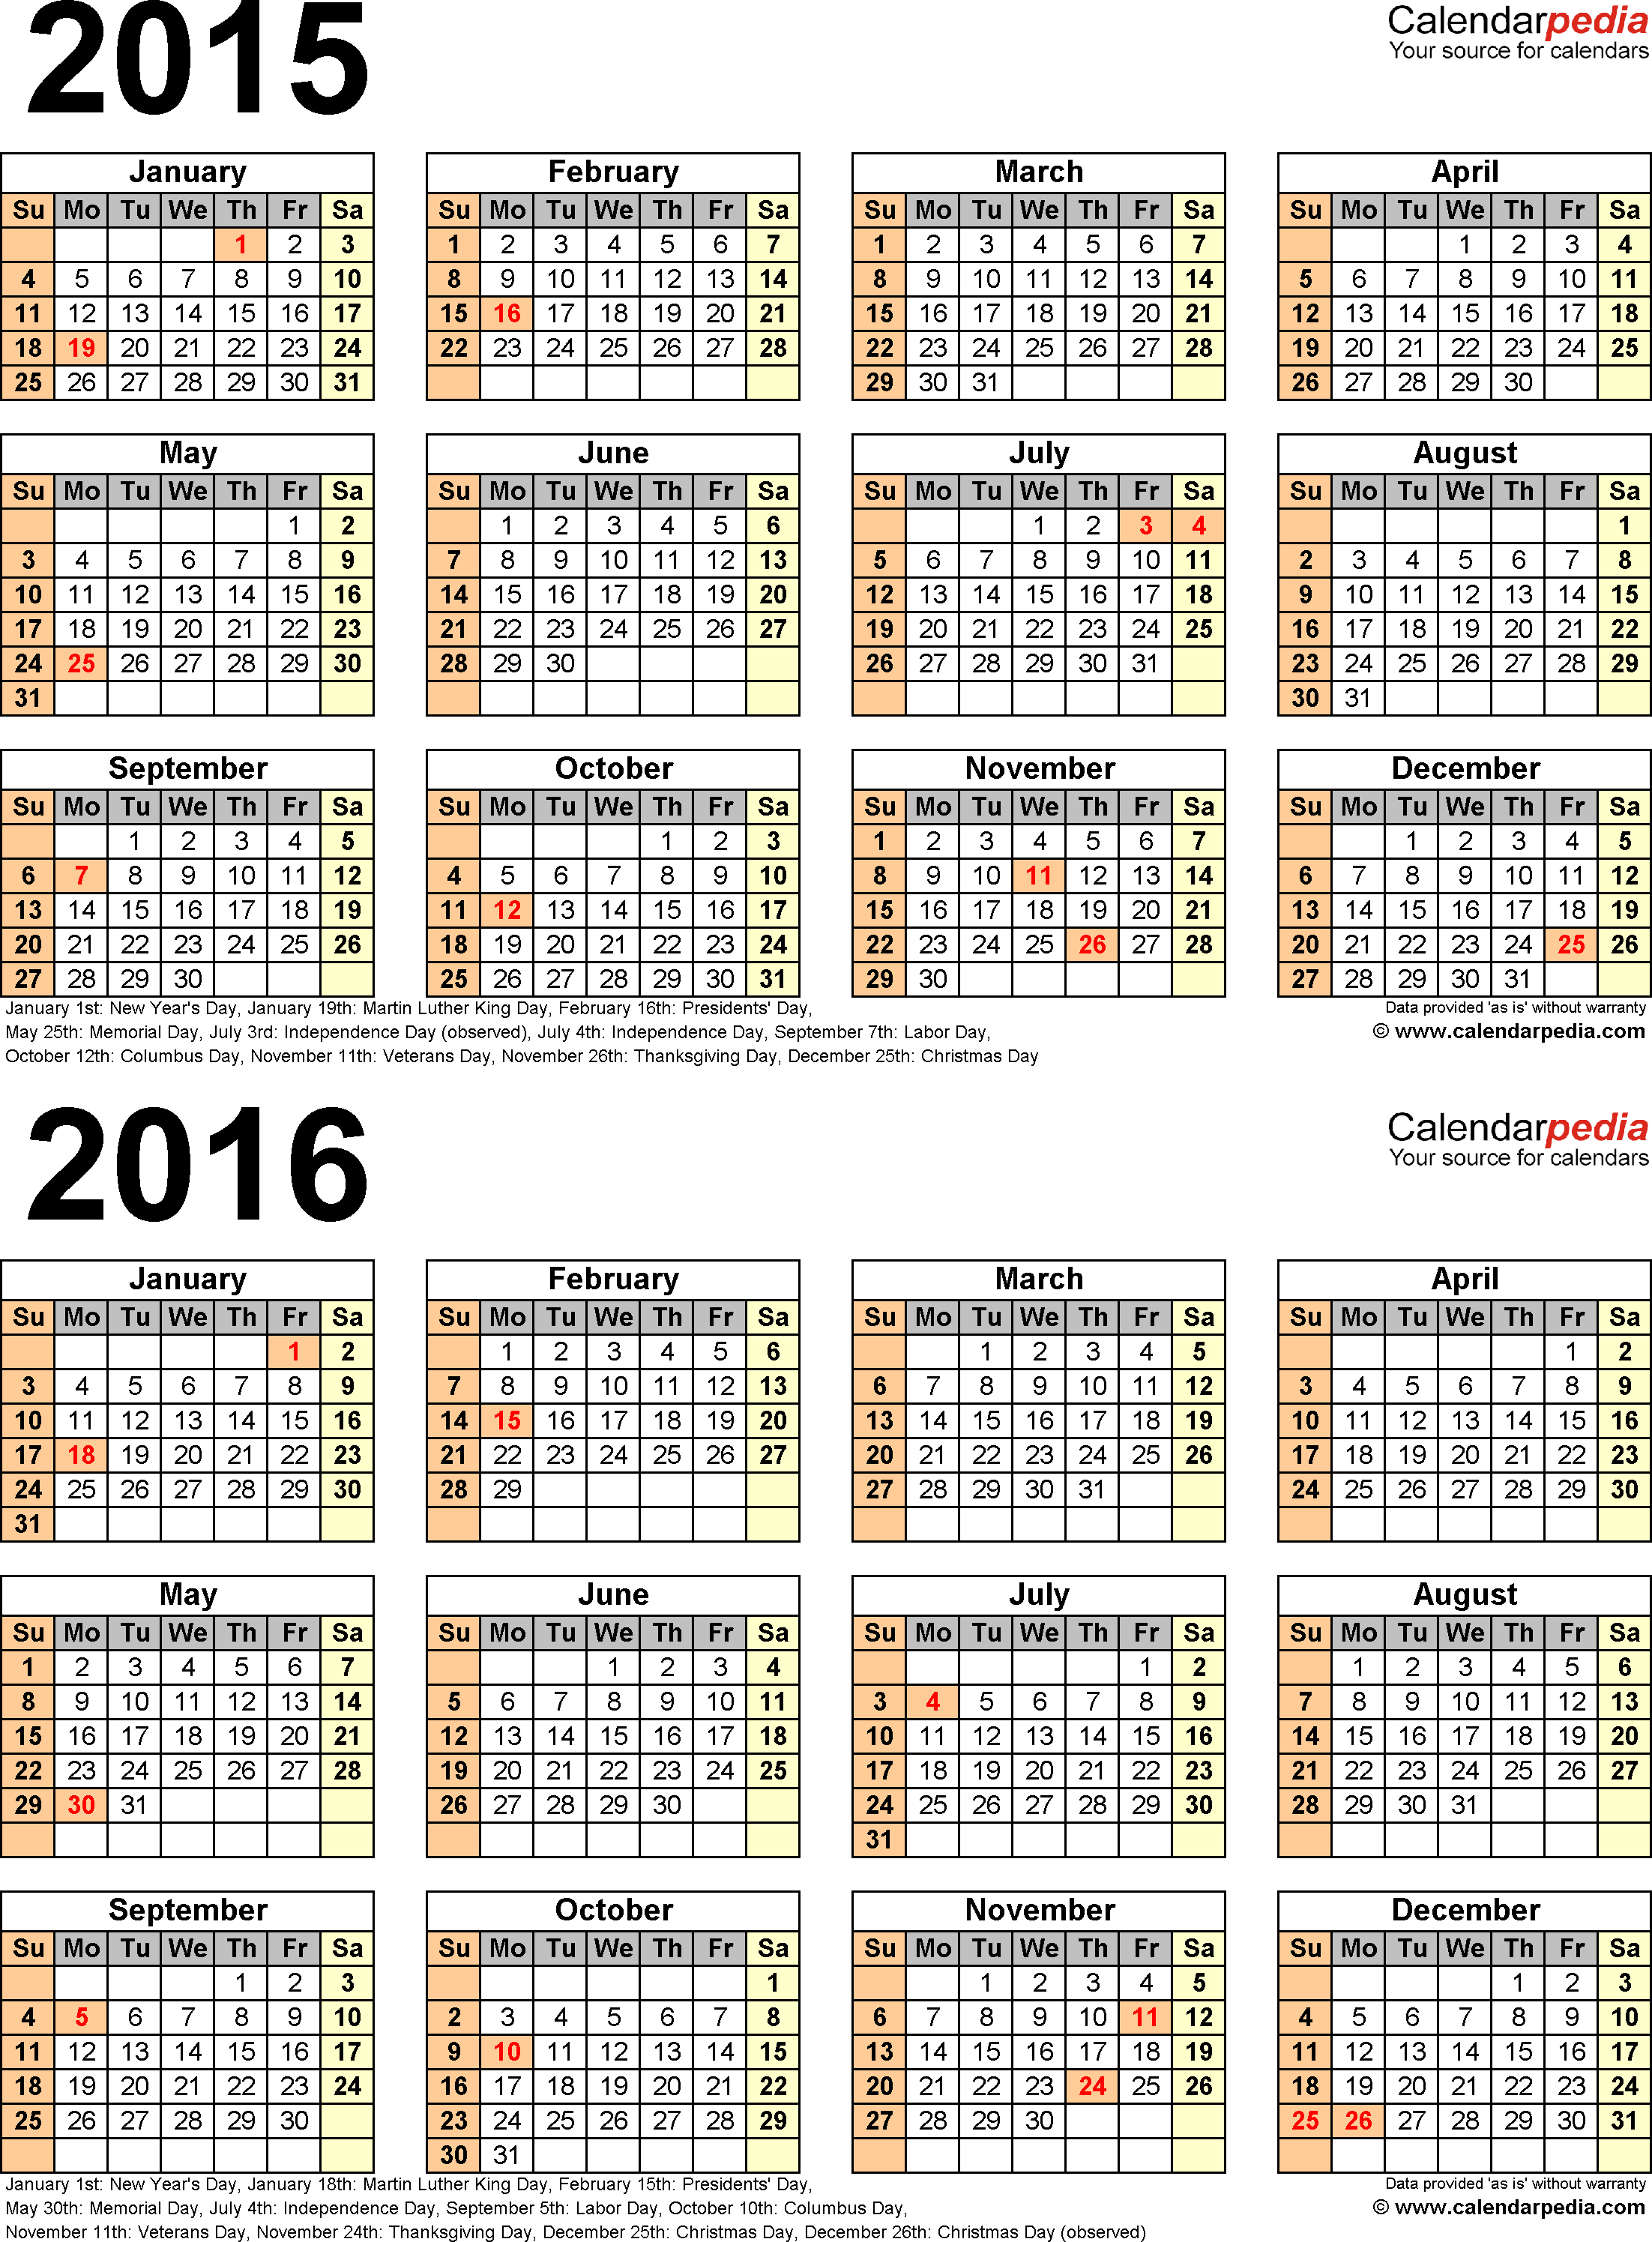 Download Template 5: PDF template for two year calendar 2015/2016 (portrait orientation, 1 page, years stacked)